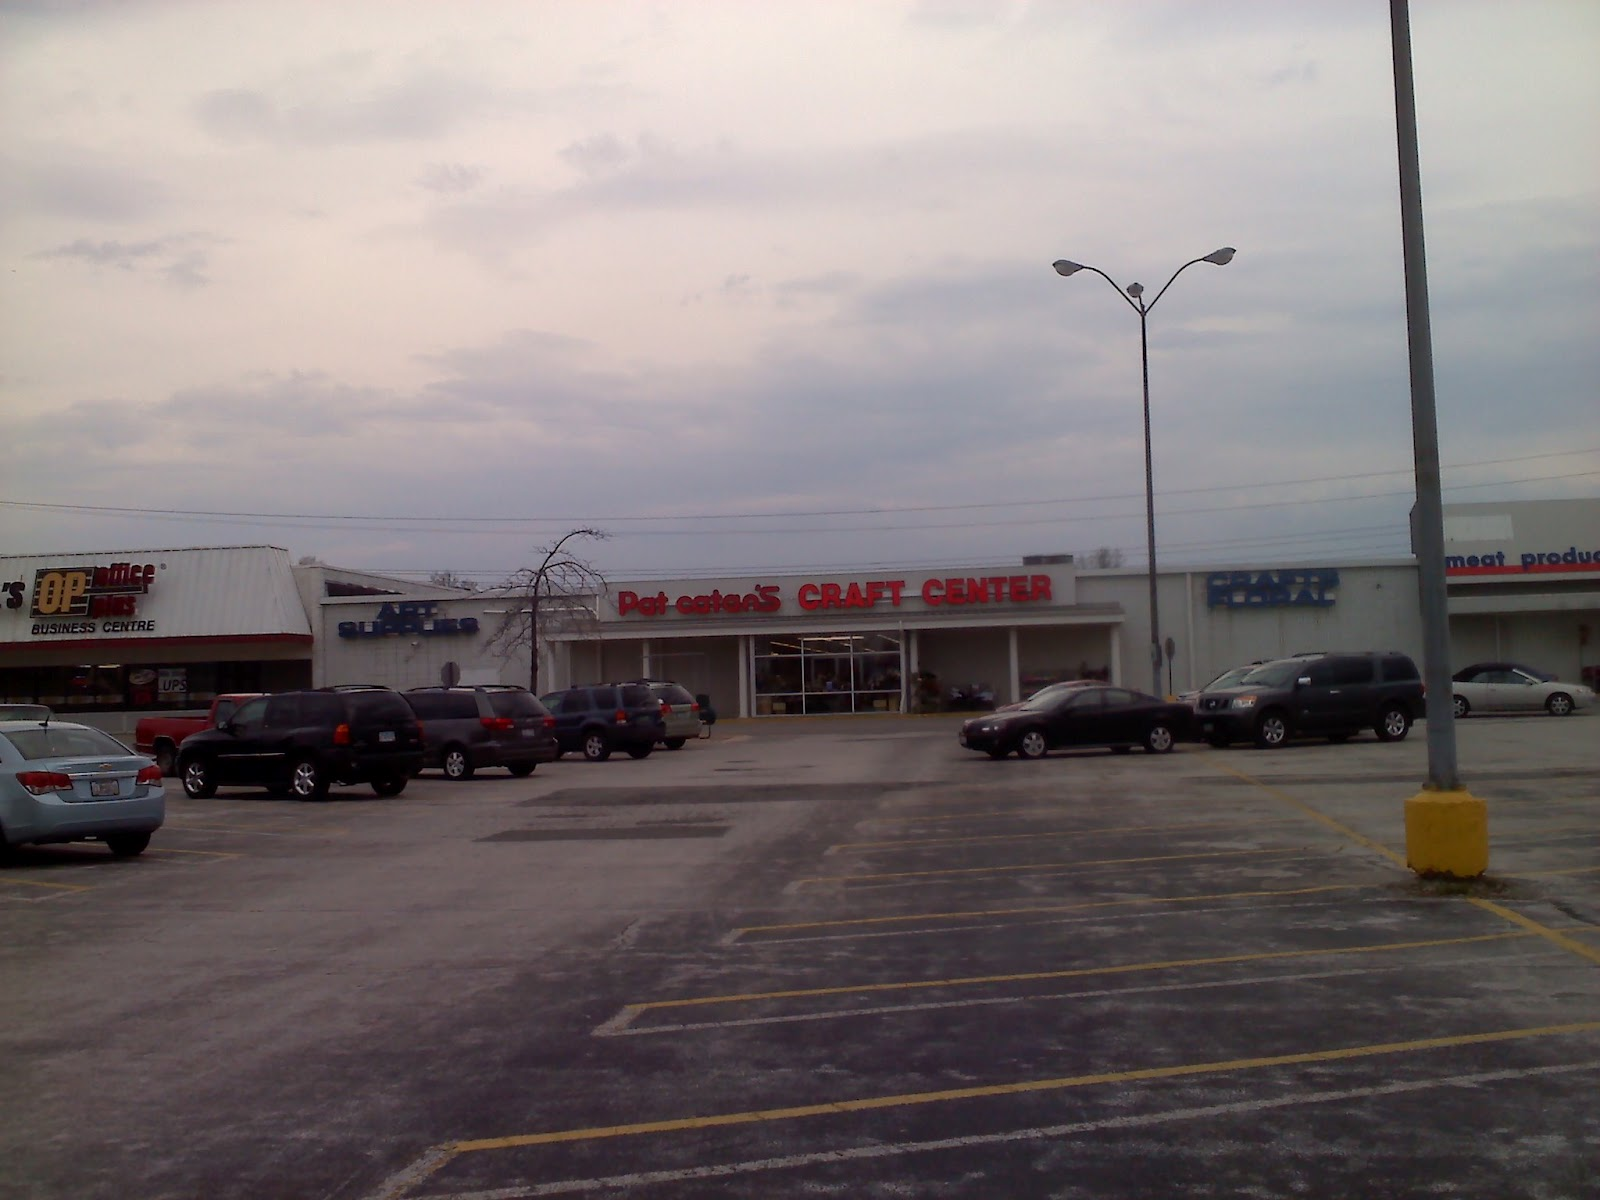 Dead and dying retail former kmart and rini rego in for Pat catan s craft center